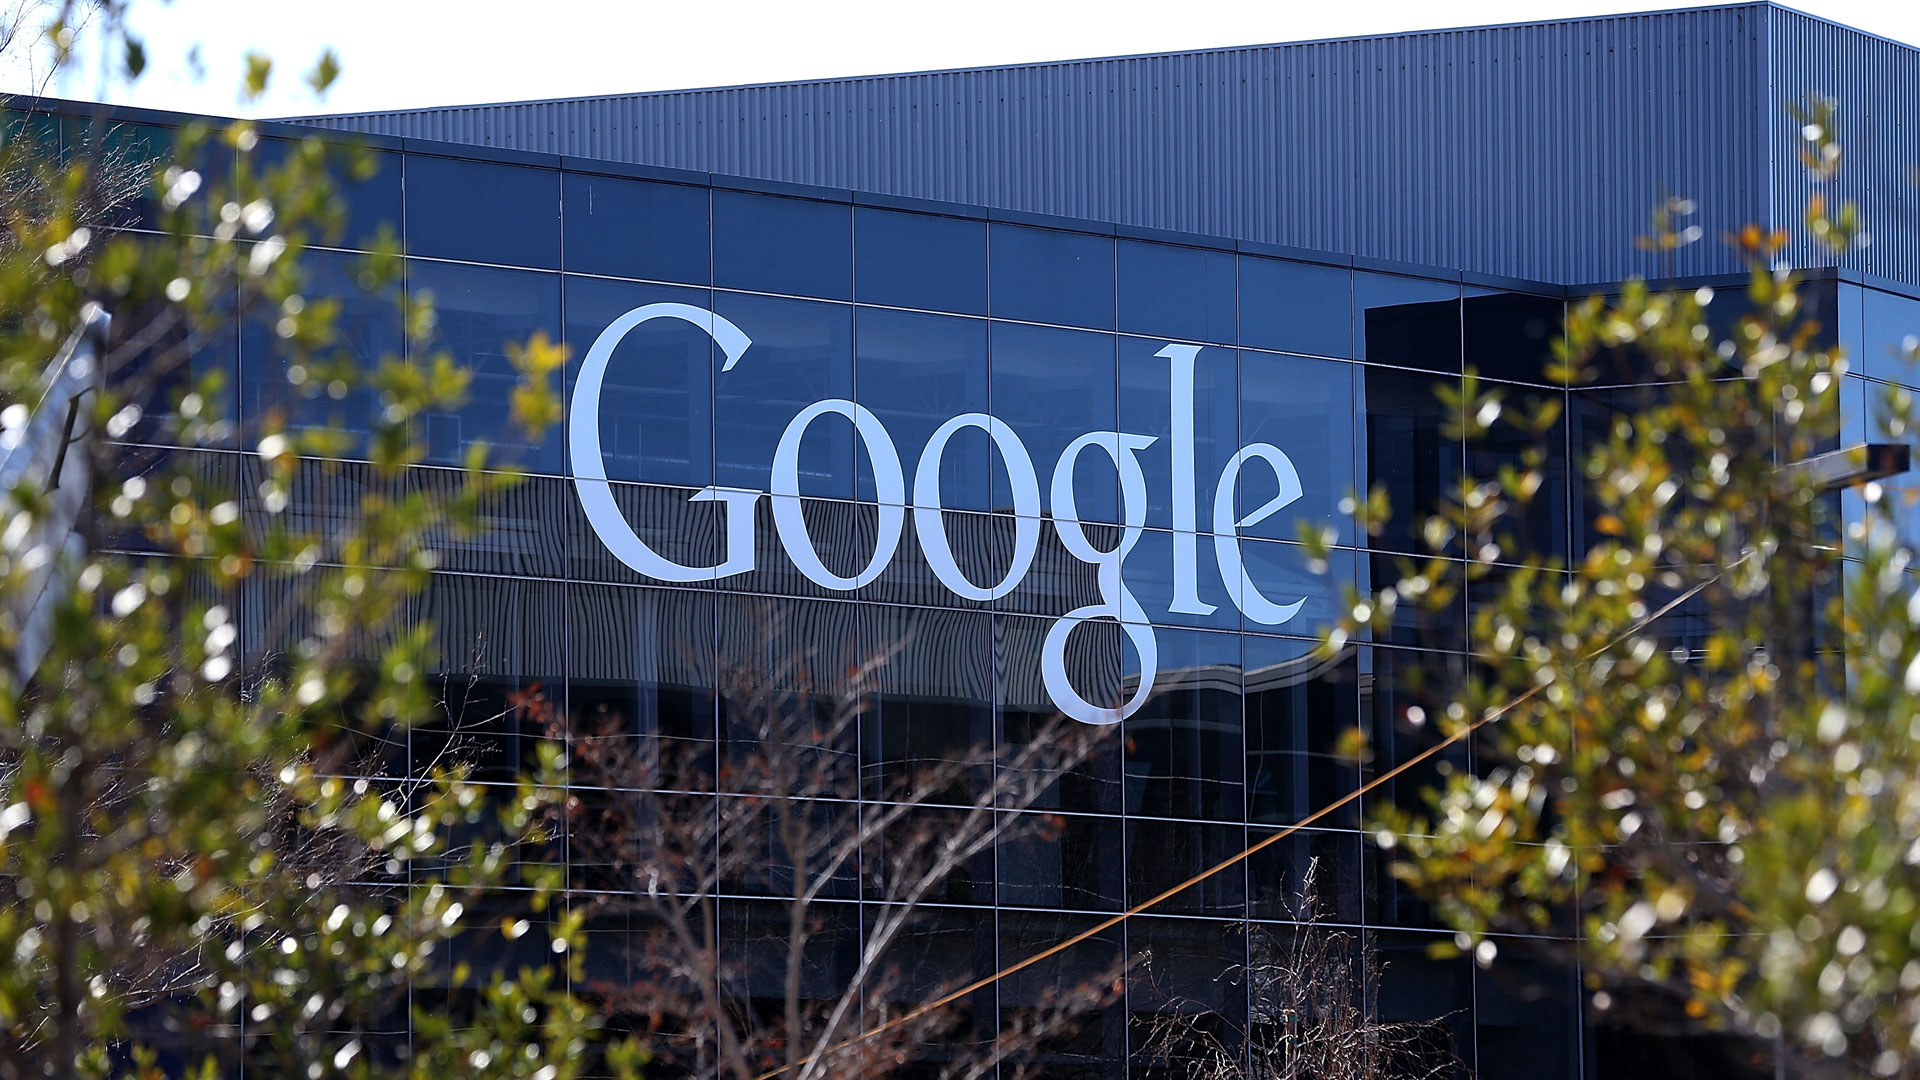 Google Director Chats about Global Campuses for Entrepreneurs